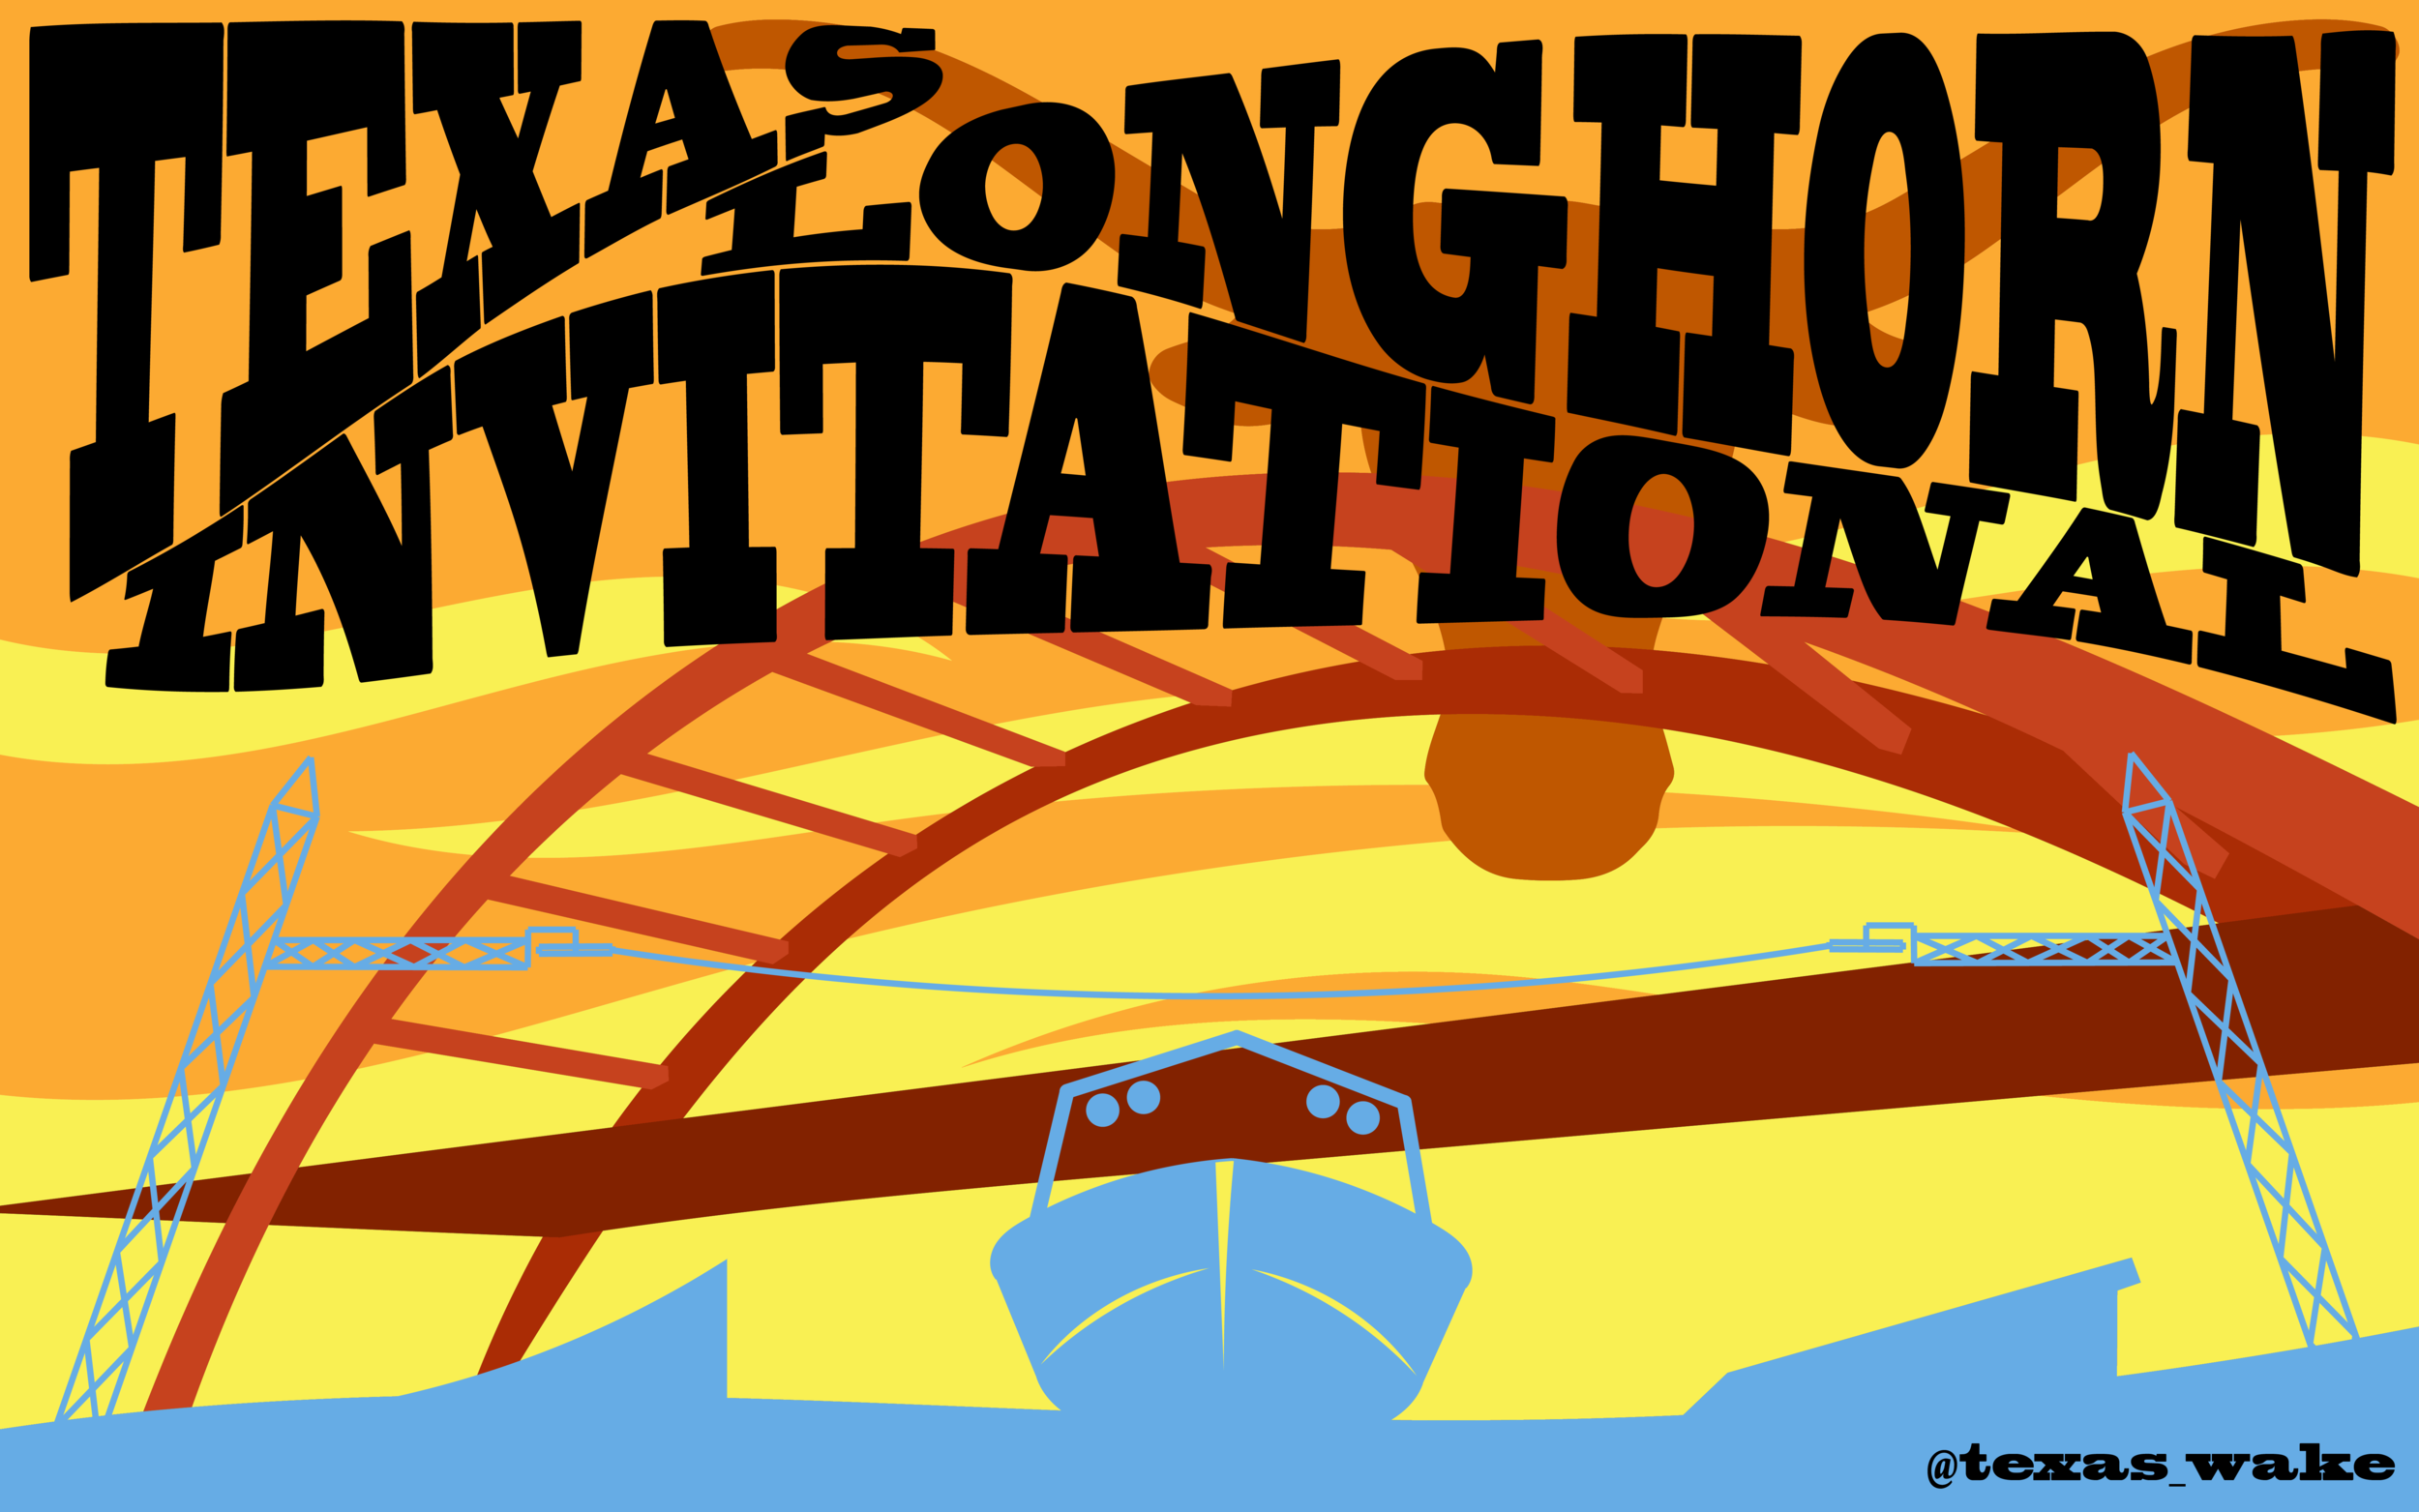 Banner design by Lucas Marques.